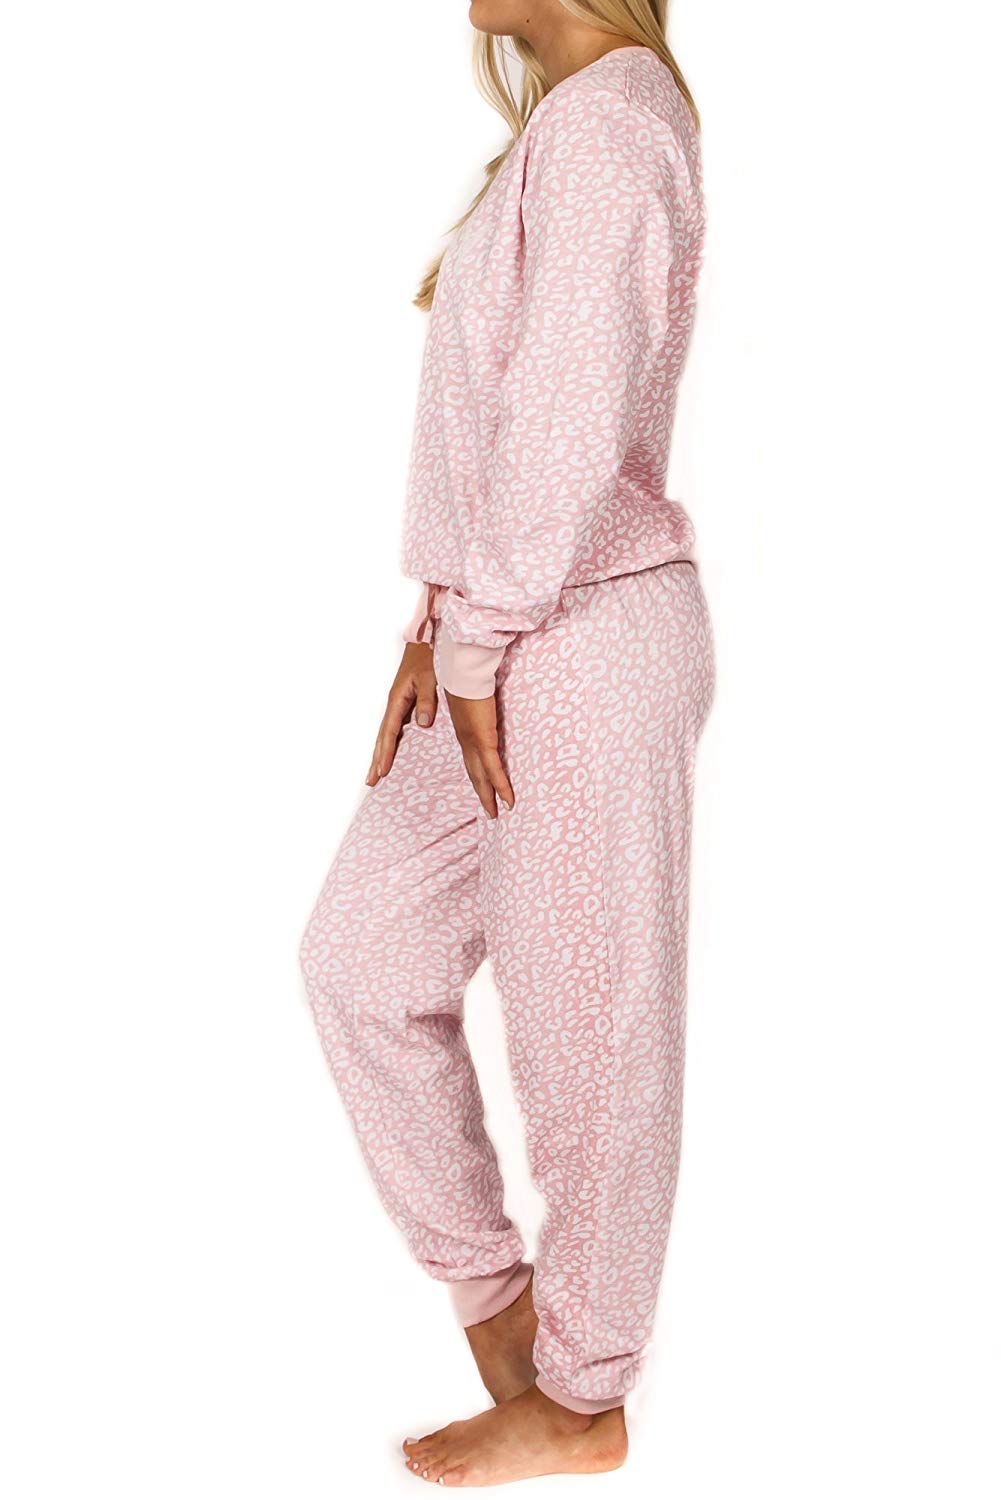 Peace Love & Fashion Women's 2PC Long-Sleeve Pajama Set - Pink Animal